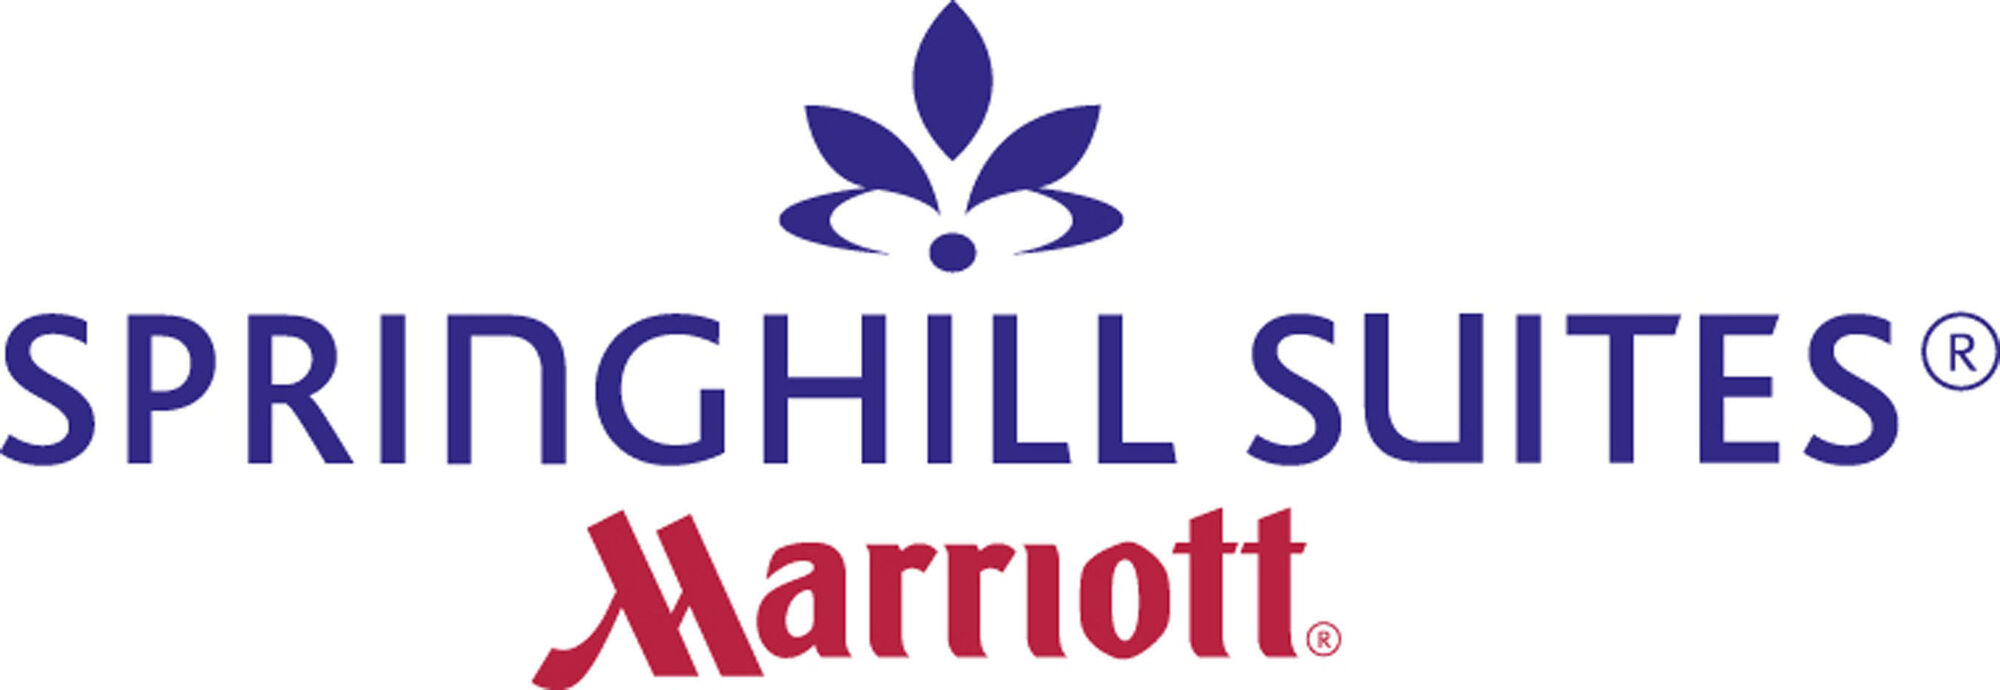 Springhill suites by marriott logopedia fandom powered for Springhill designs